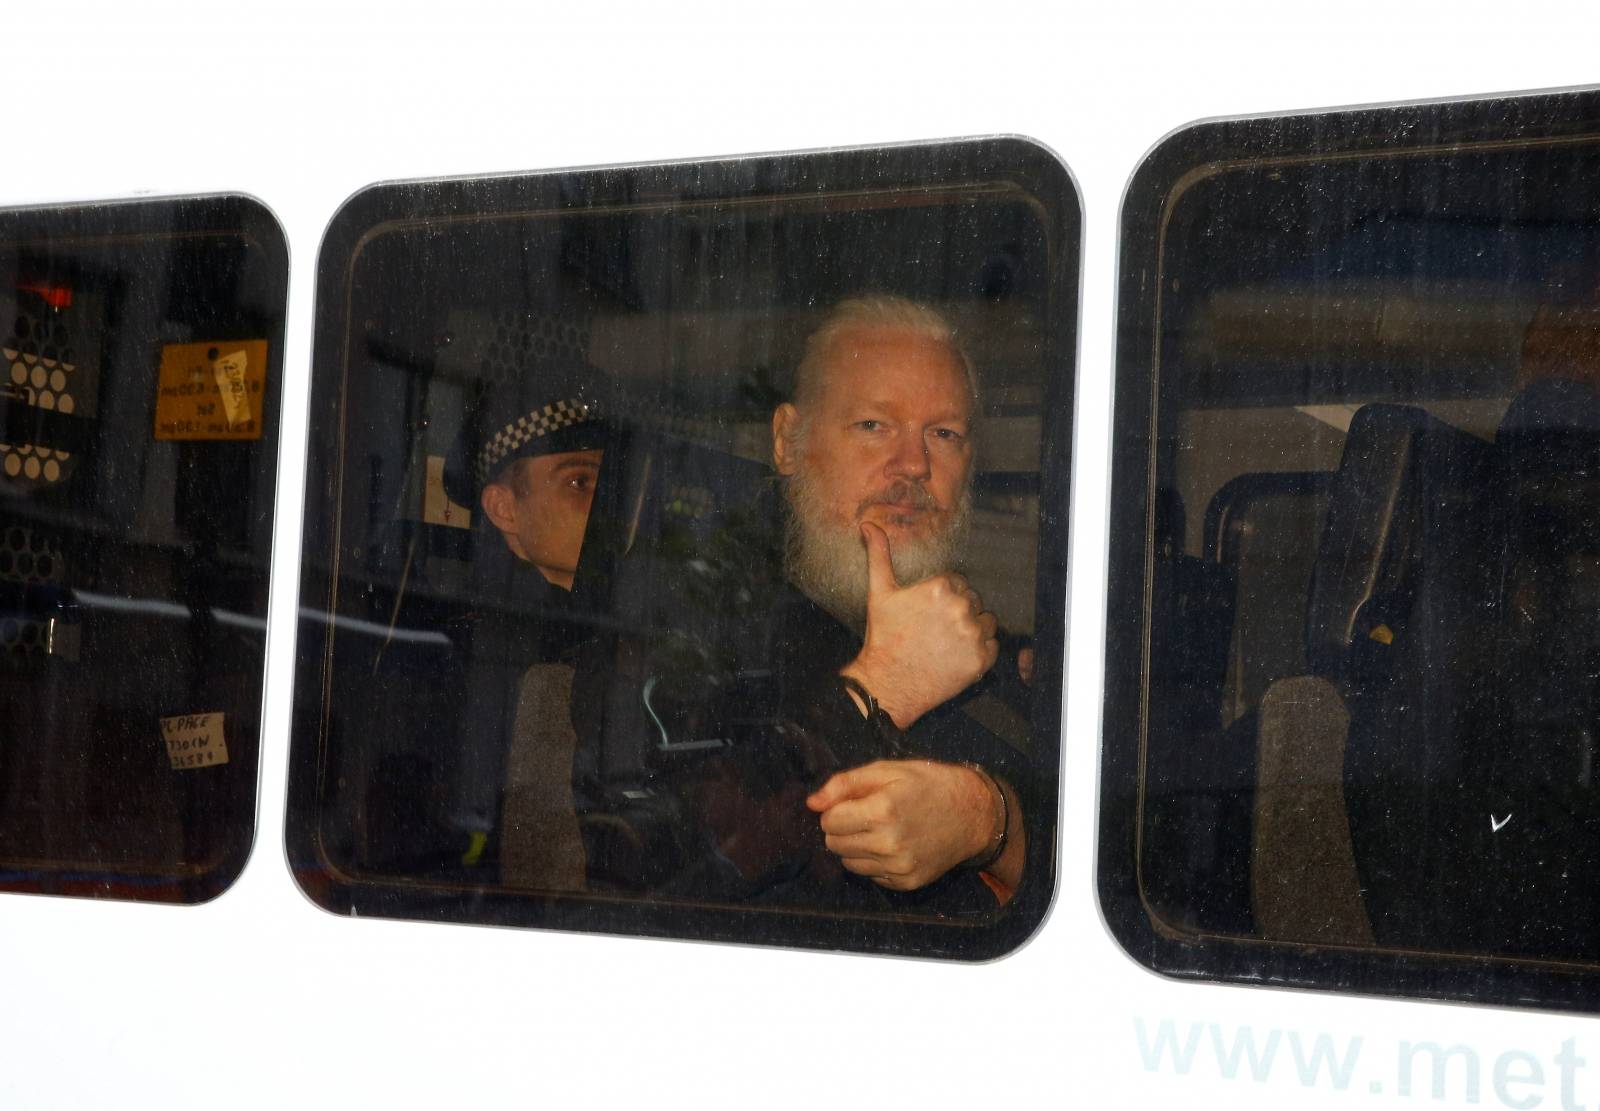 WikiLeaks founder Julian Assange is seen in a police van after was arrested by British police outside the Ecuadorian embassy in London